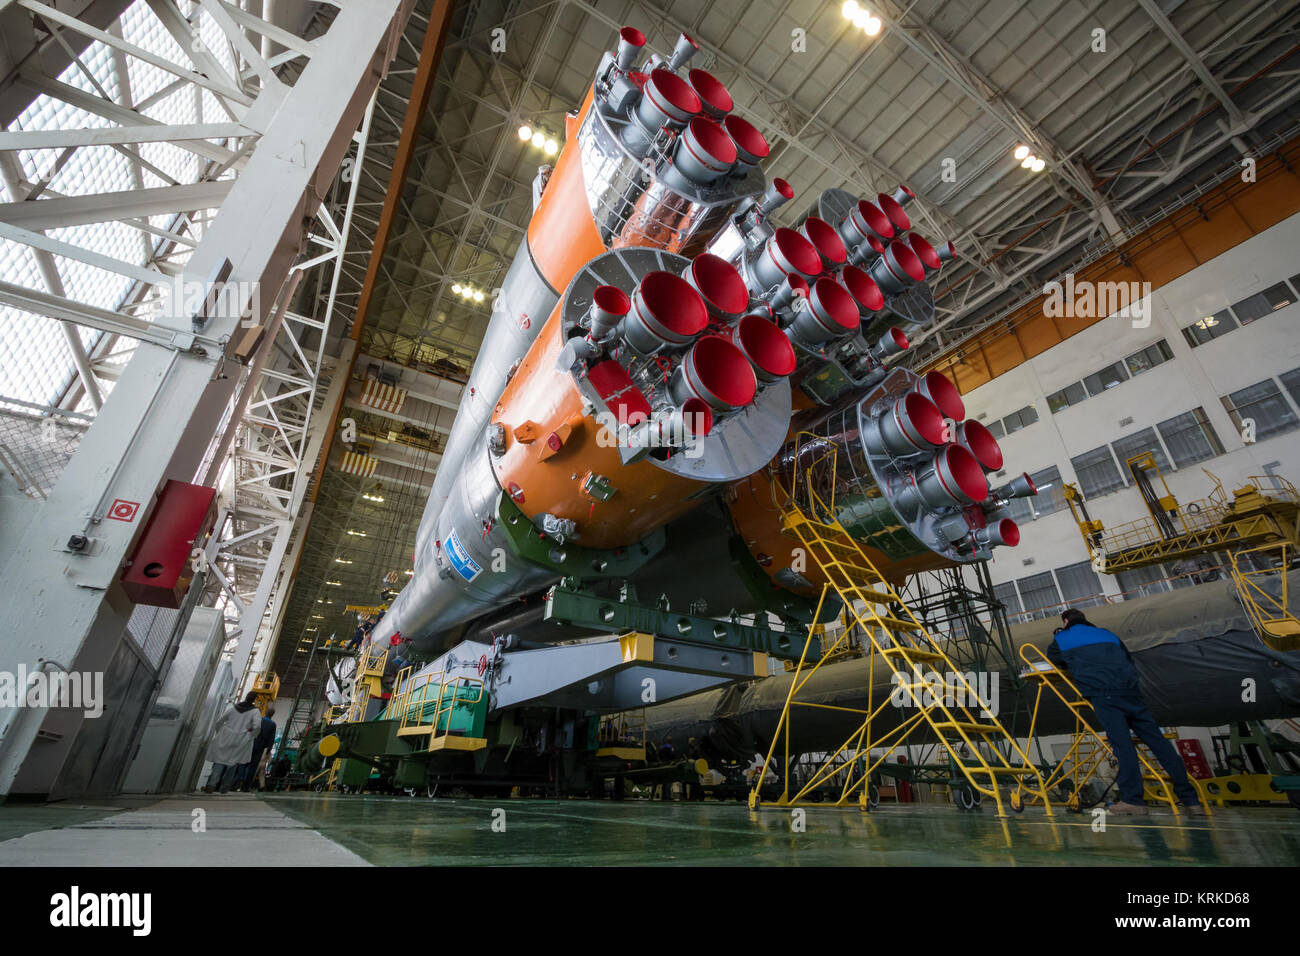 The Soyuz rocket and Soyuz TMA-19M spacecraft is seen after being assembled in Building 112 on the Baikonur Cosmodrome - Stock Image